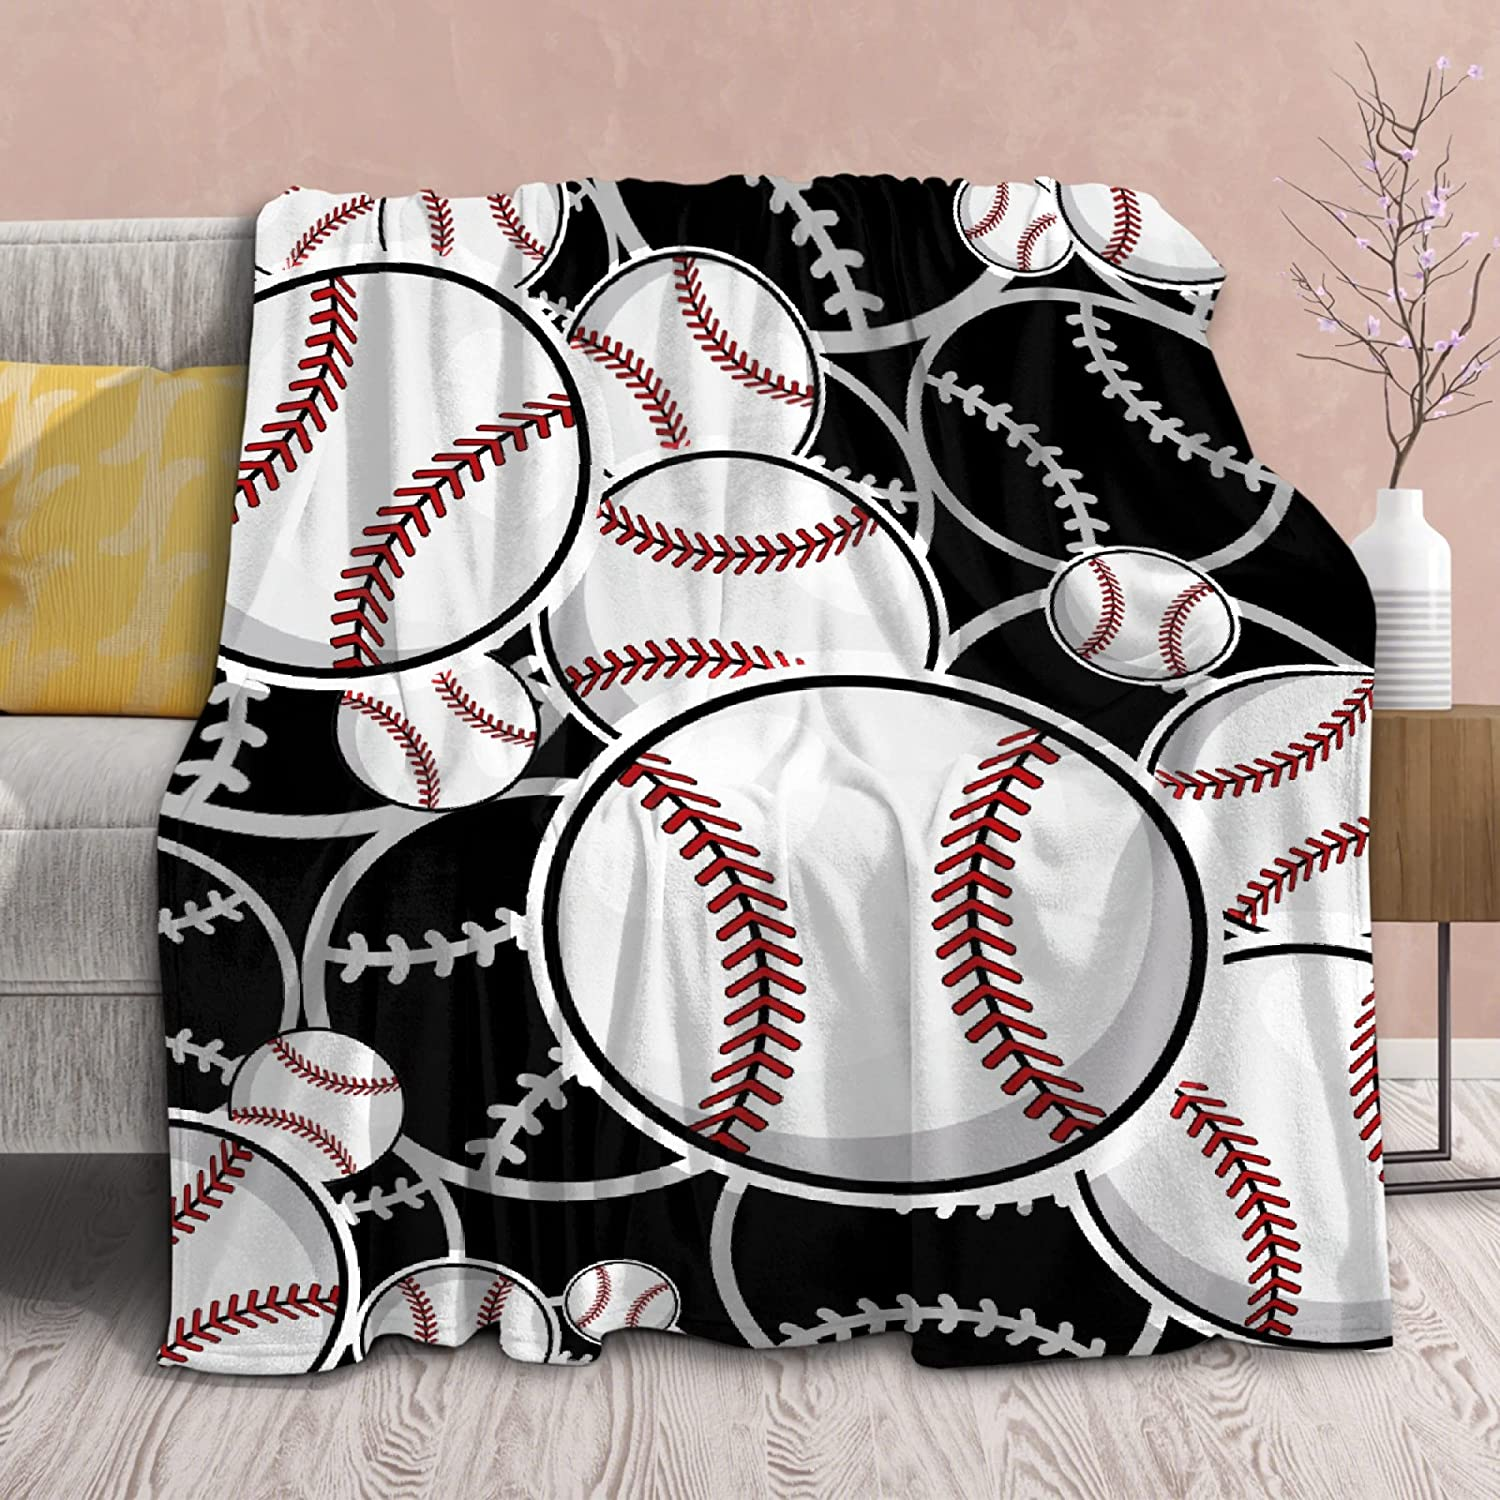 Blanket Baseball Softball Sport Fans Throws Quilt 2021 spring 100% quality warranty! and summer new So Lightweight